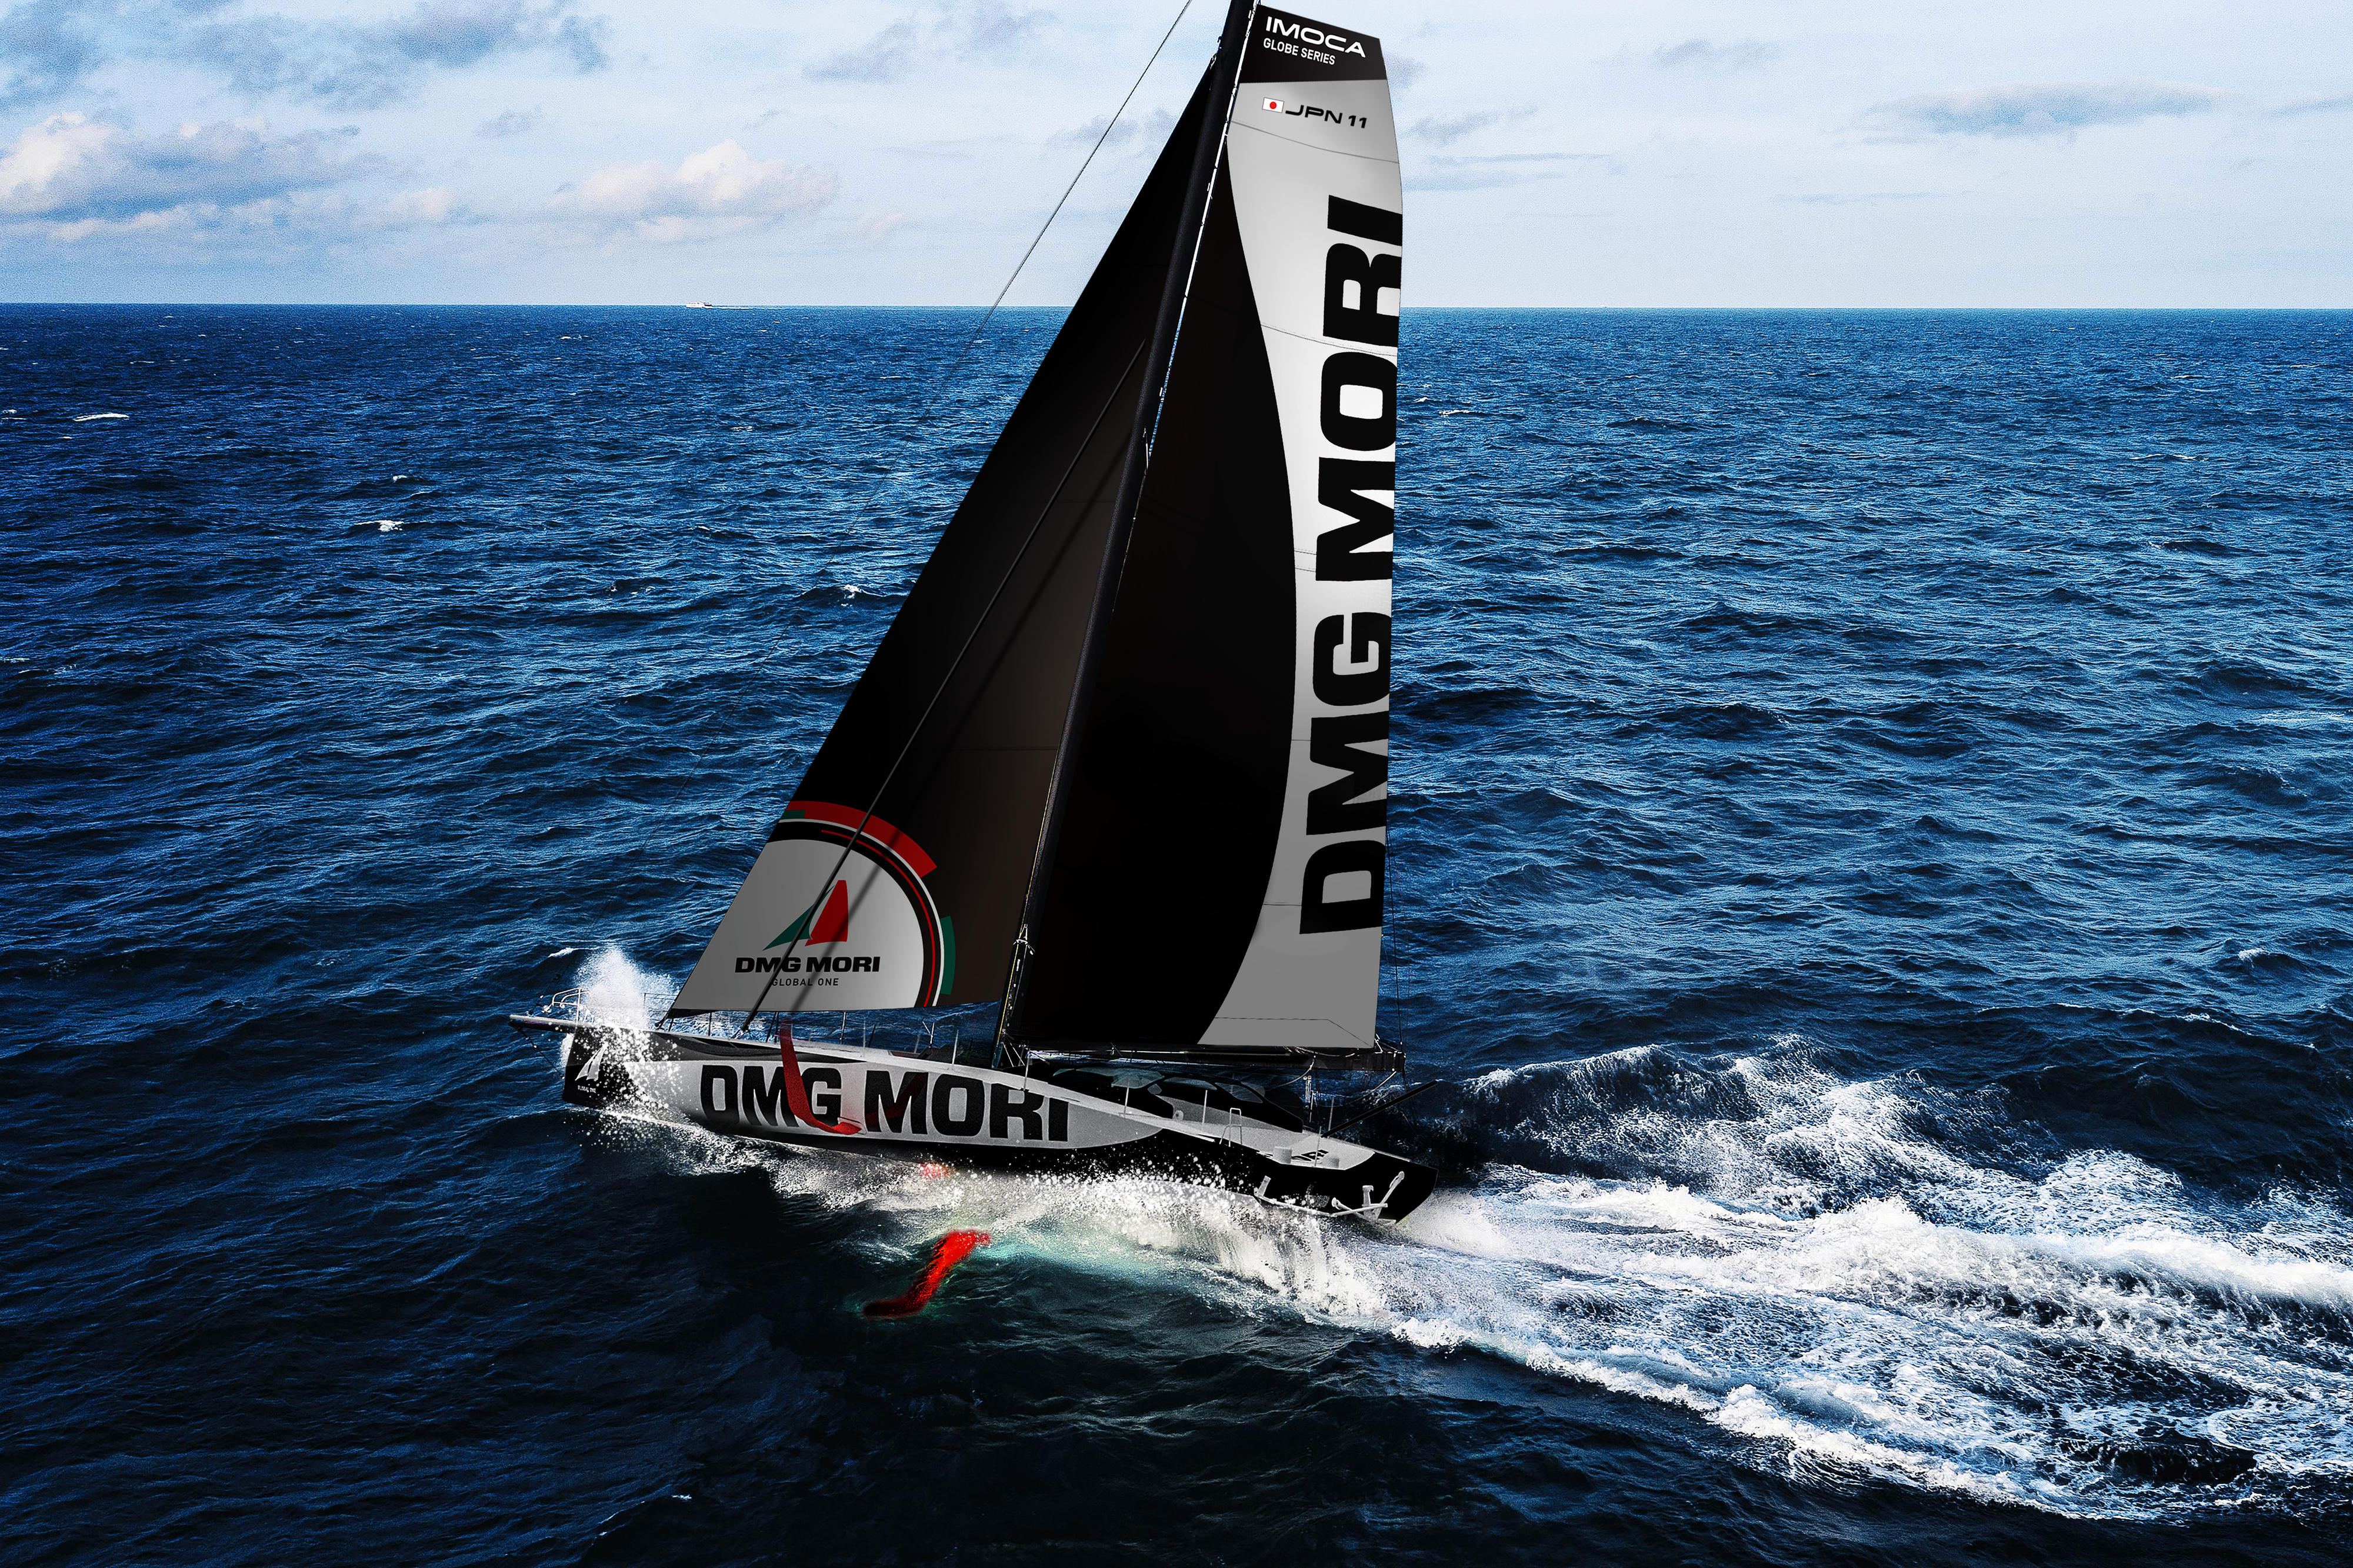 DMG MORI SAILING TEAM